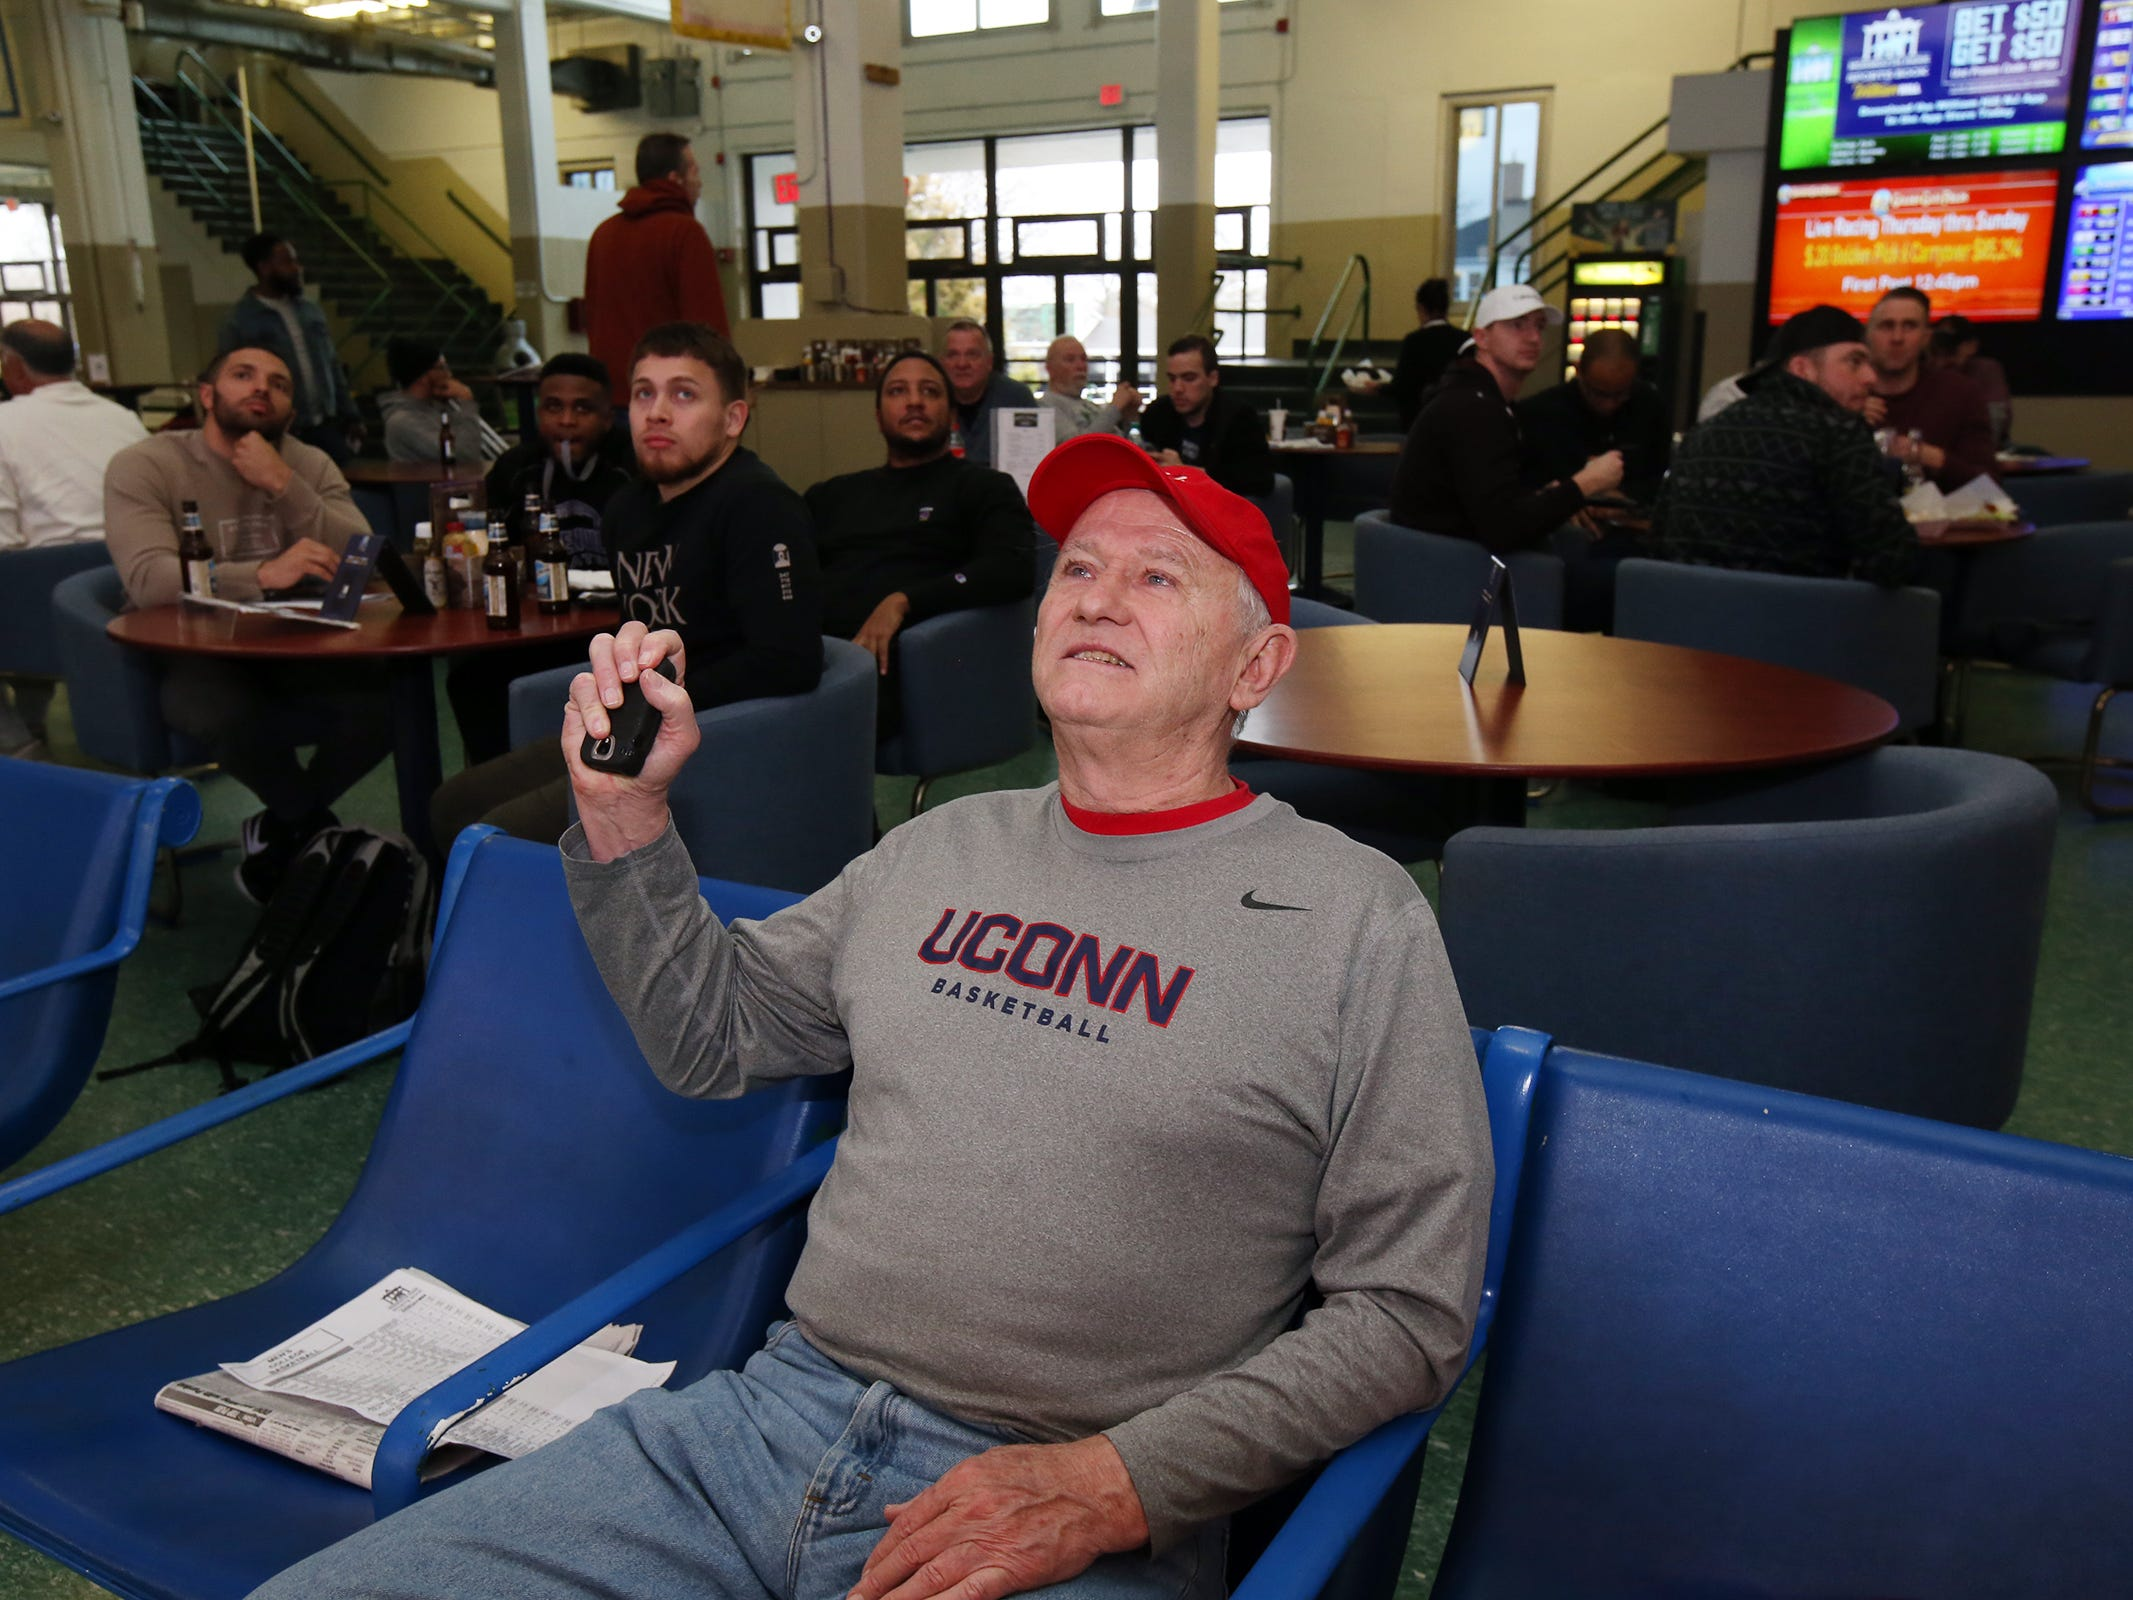 Paul Travers of Oceanport watches the Minnesota vs. Louisville game during March Madness, the NCAA men's college basketball tournament, at Monmouth Park's William Hill Sports Book in Oceanport, NJ Thursday March 21, 2019.